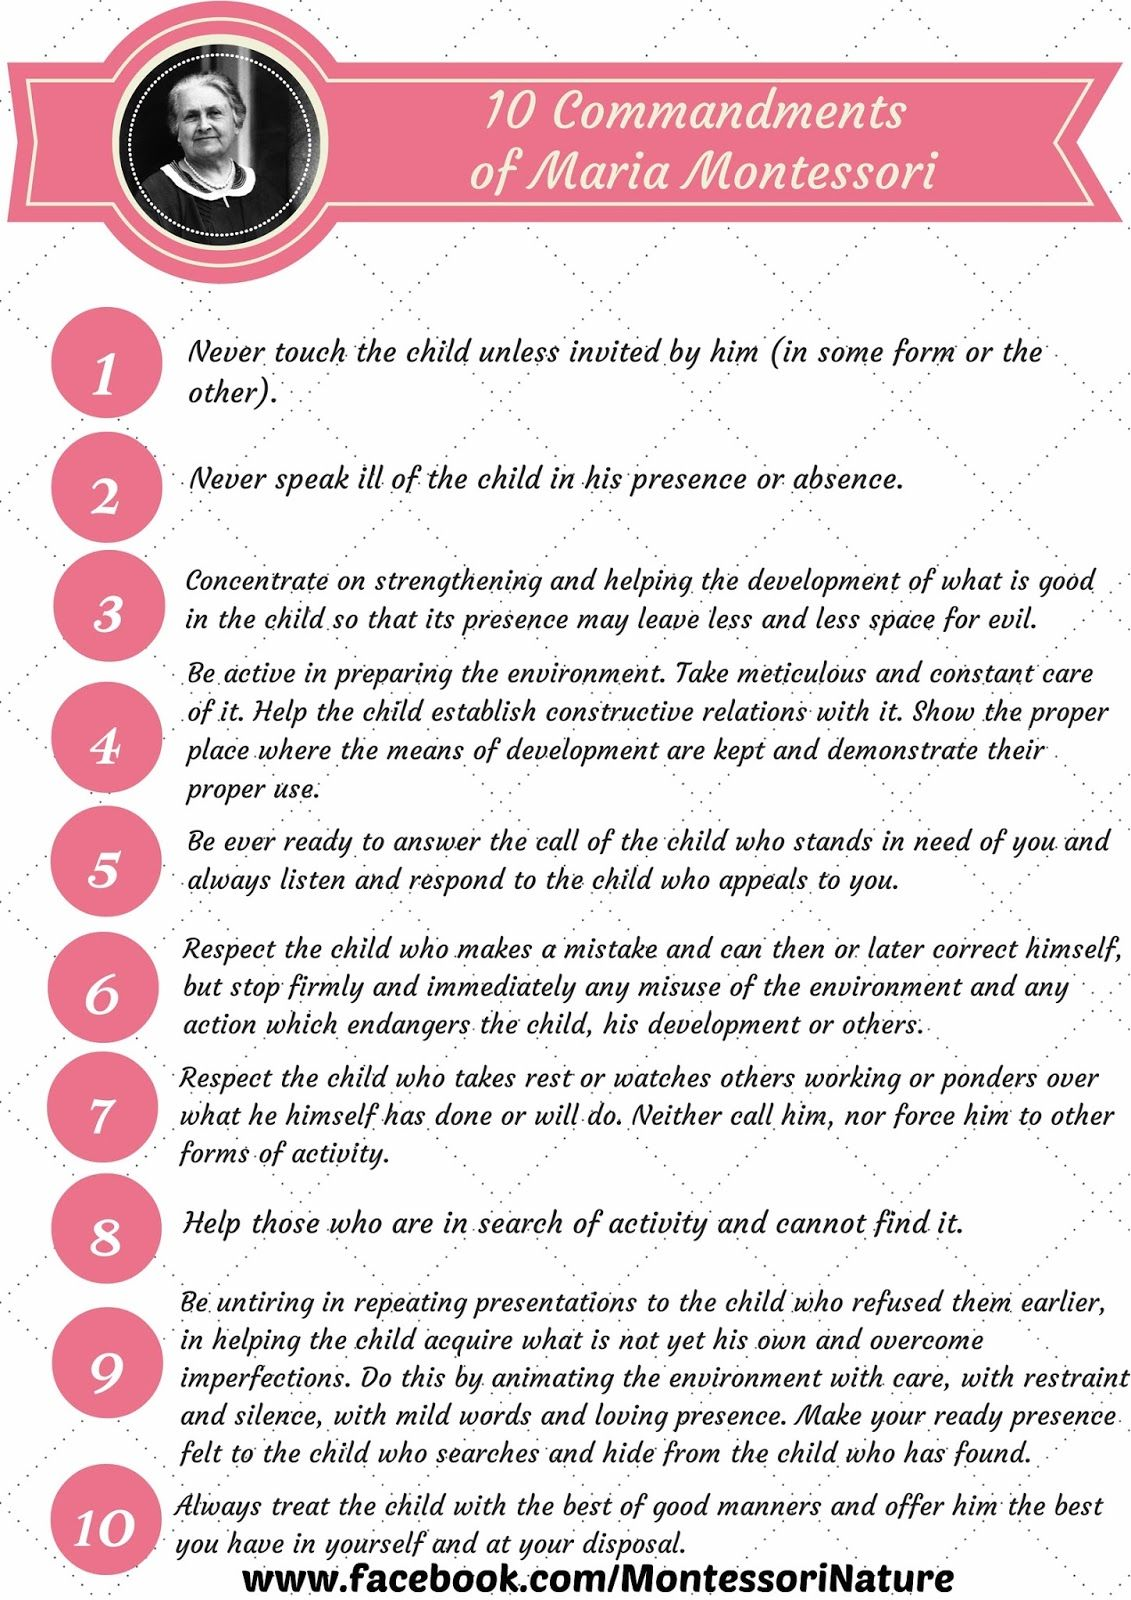 10 Commandments Of Maria Montessori A Decalogue By Dr M